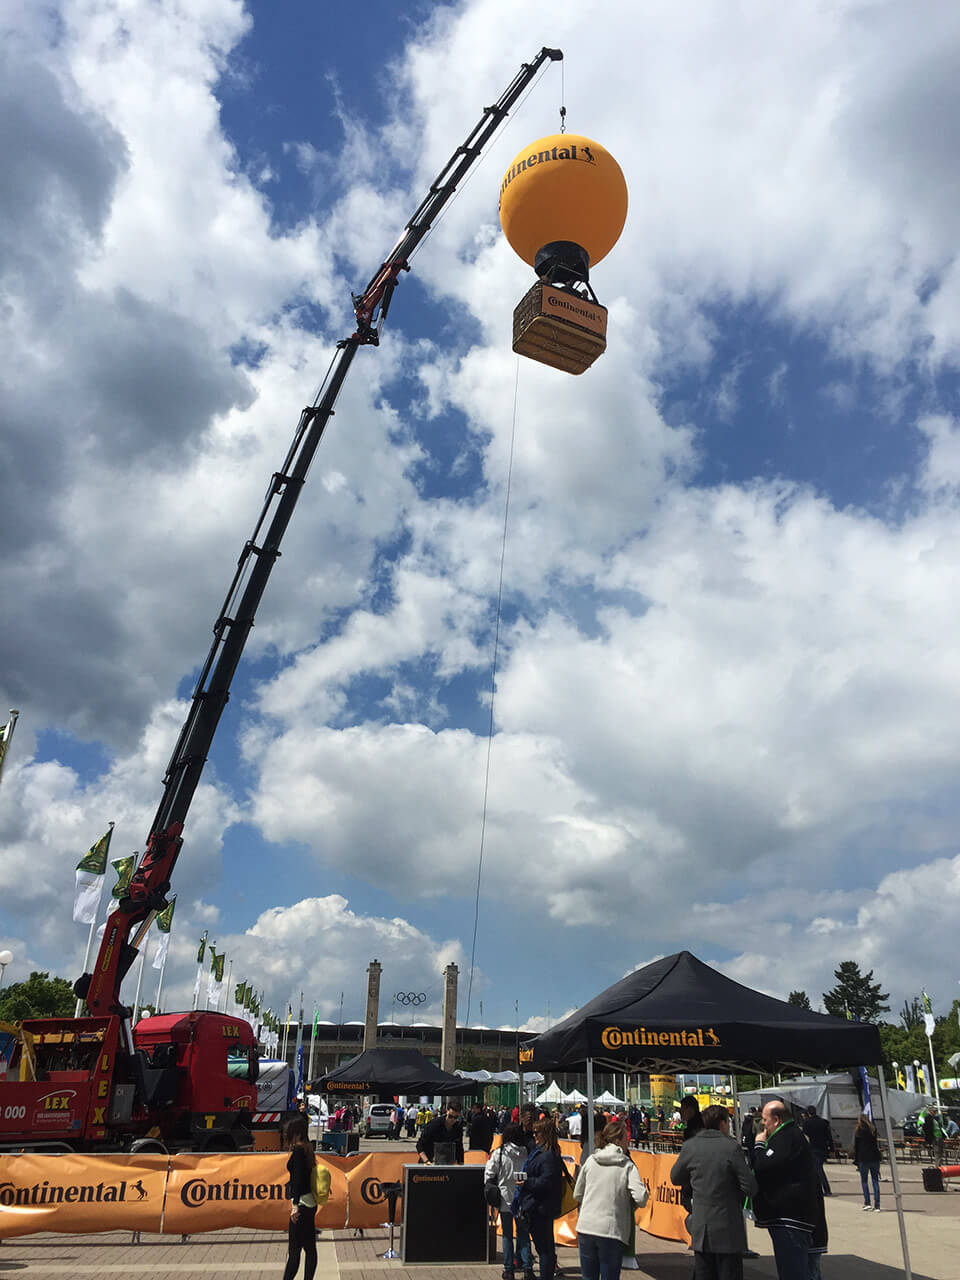 eventmodul-ballon-am-kran-3